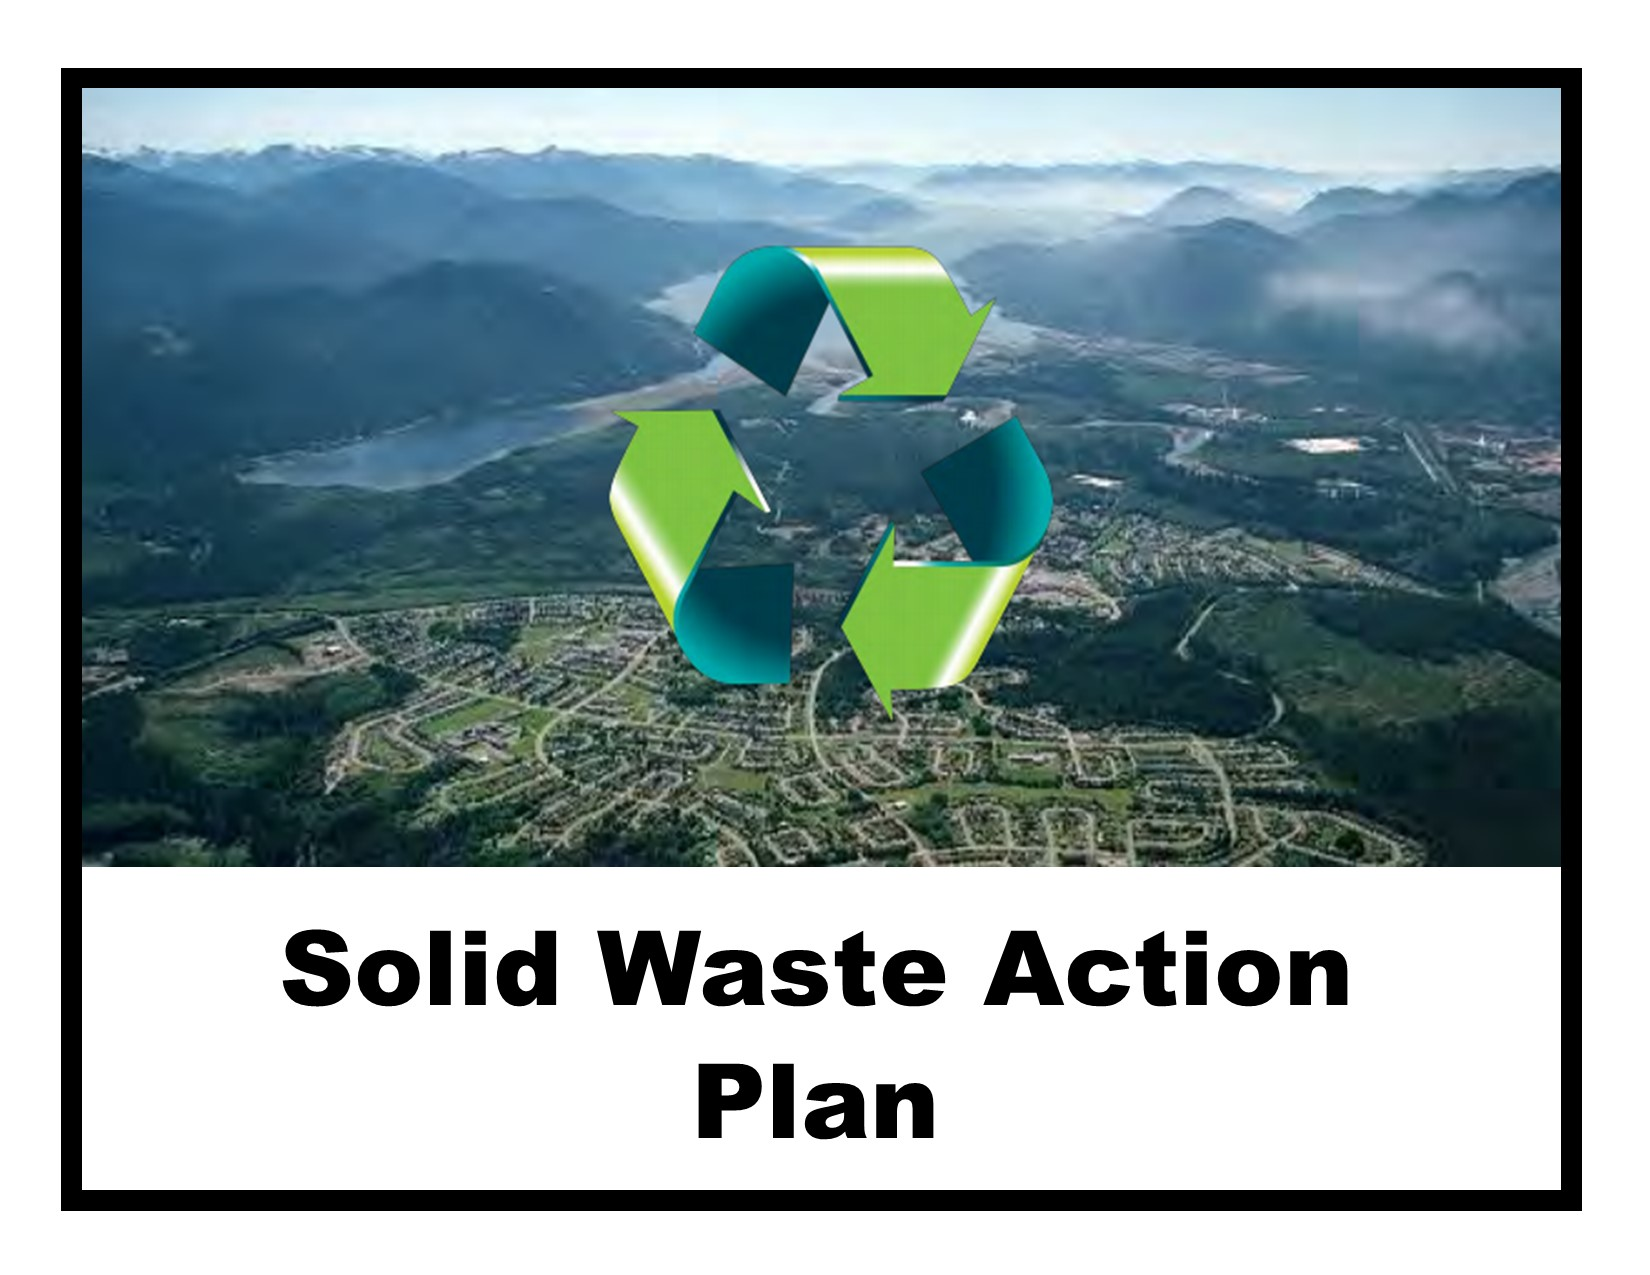 Solid Waste Action Plan